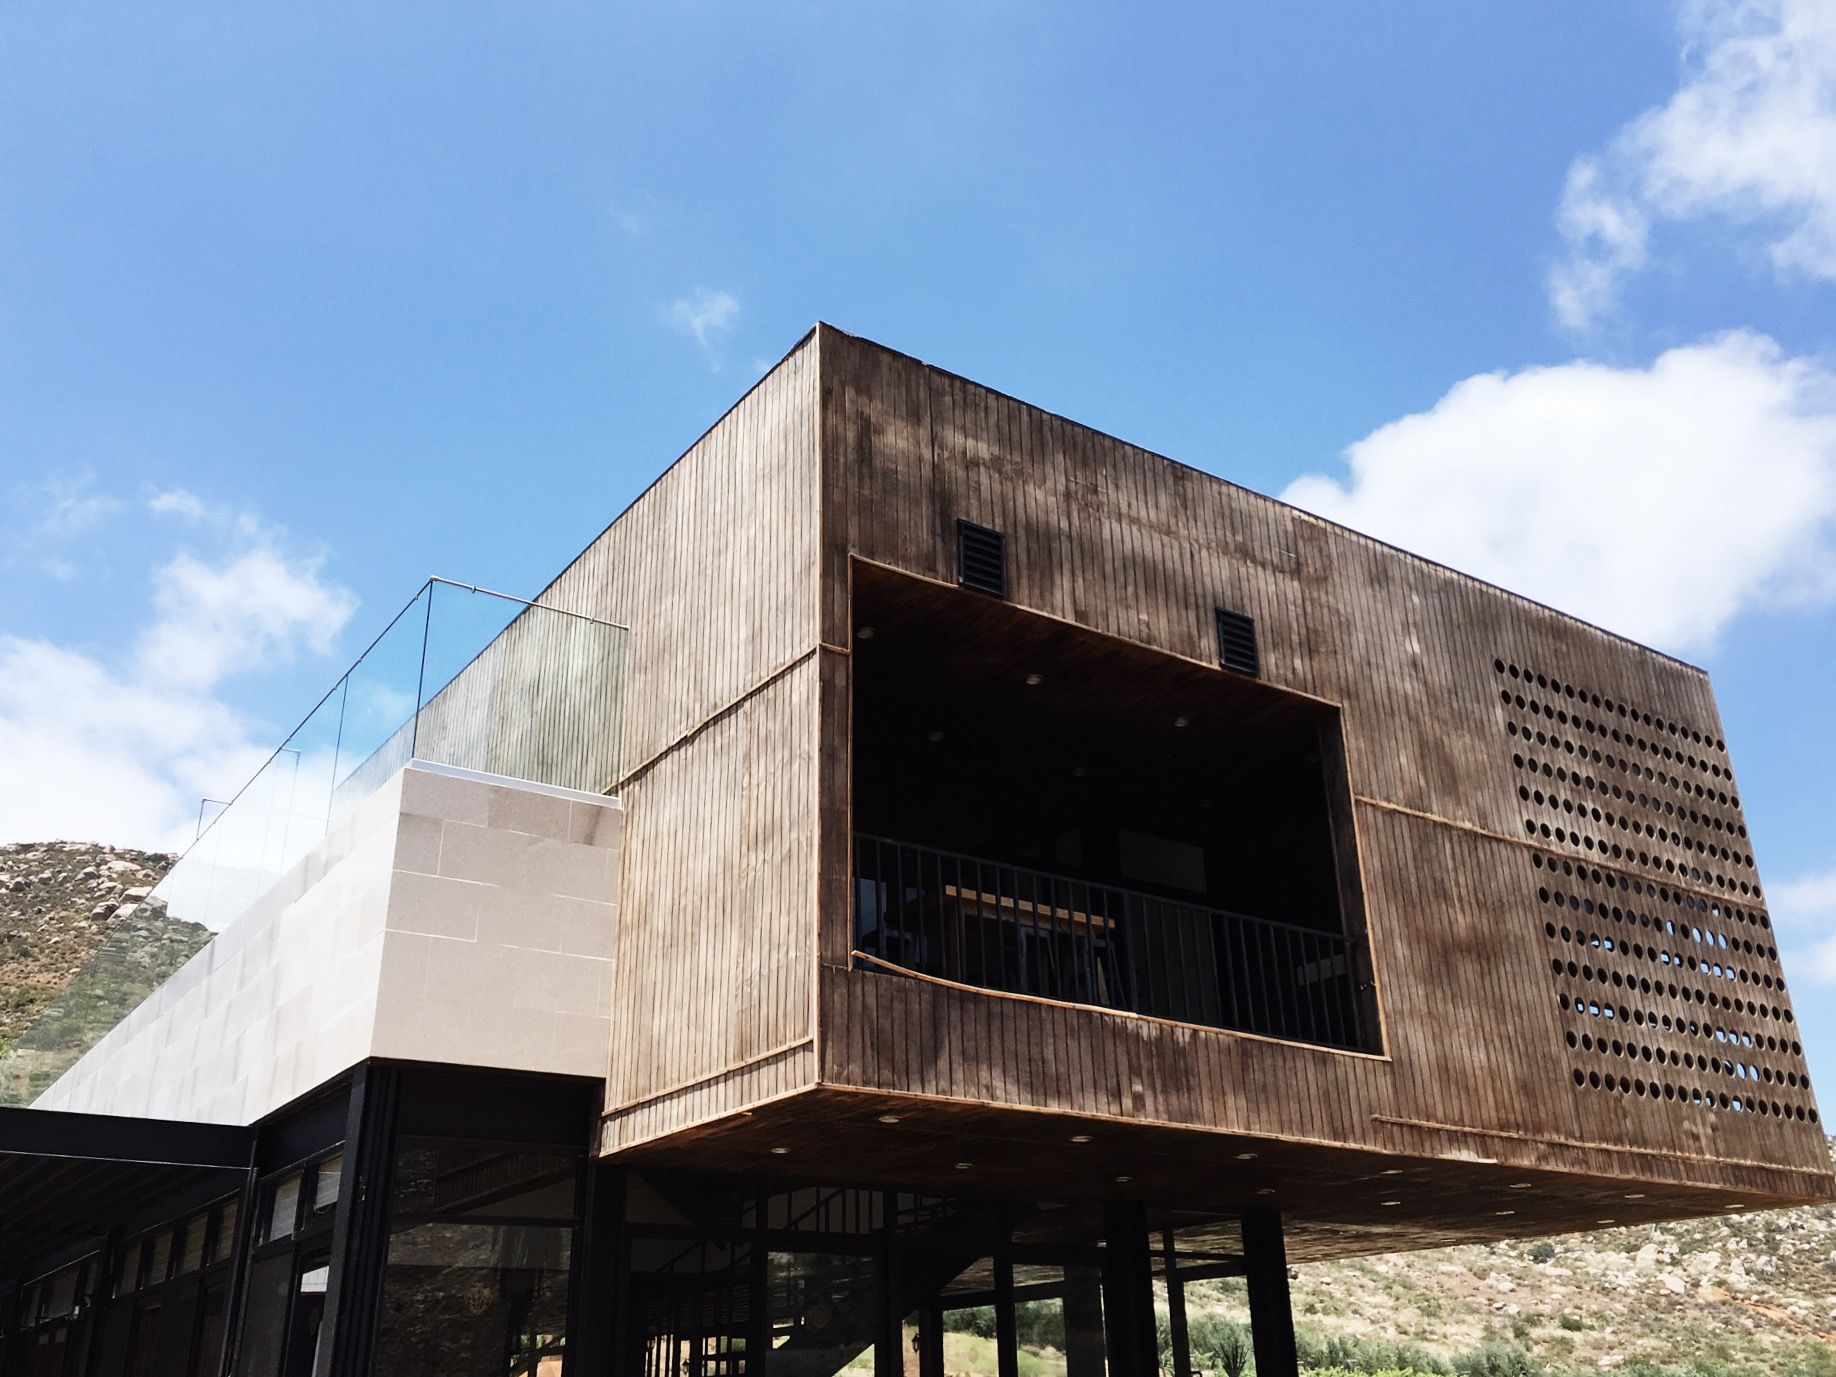 With its streamline design, gorgeous tasting room, and a great outdoor patio that leaves you gazing out at ...